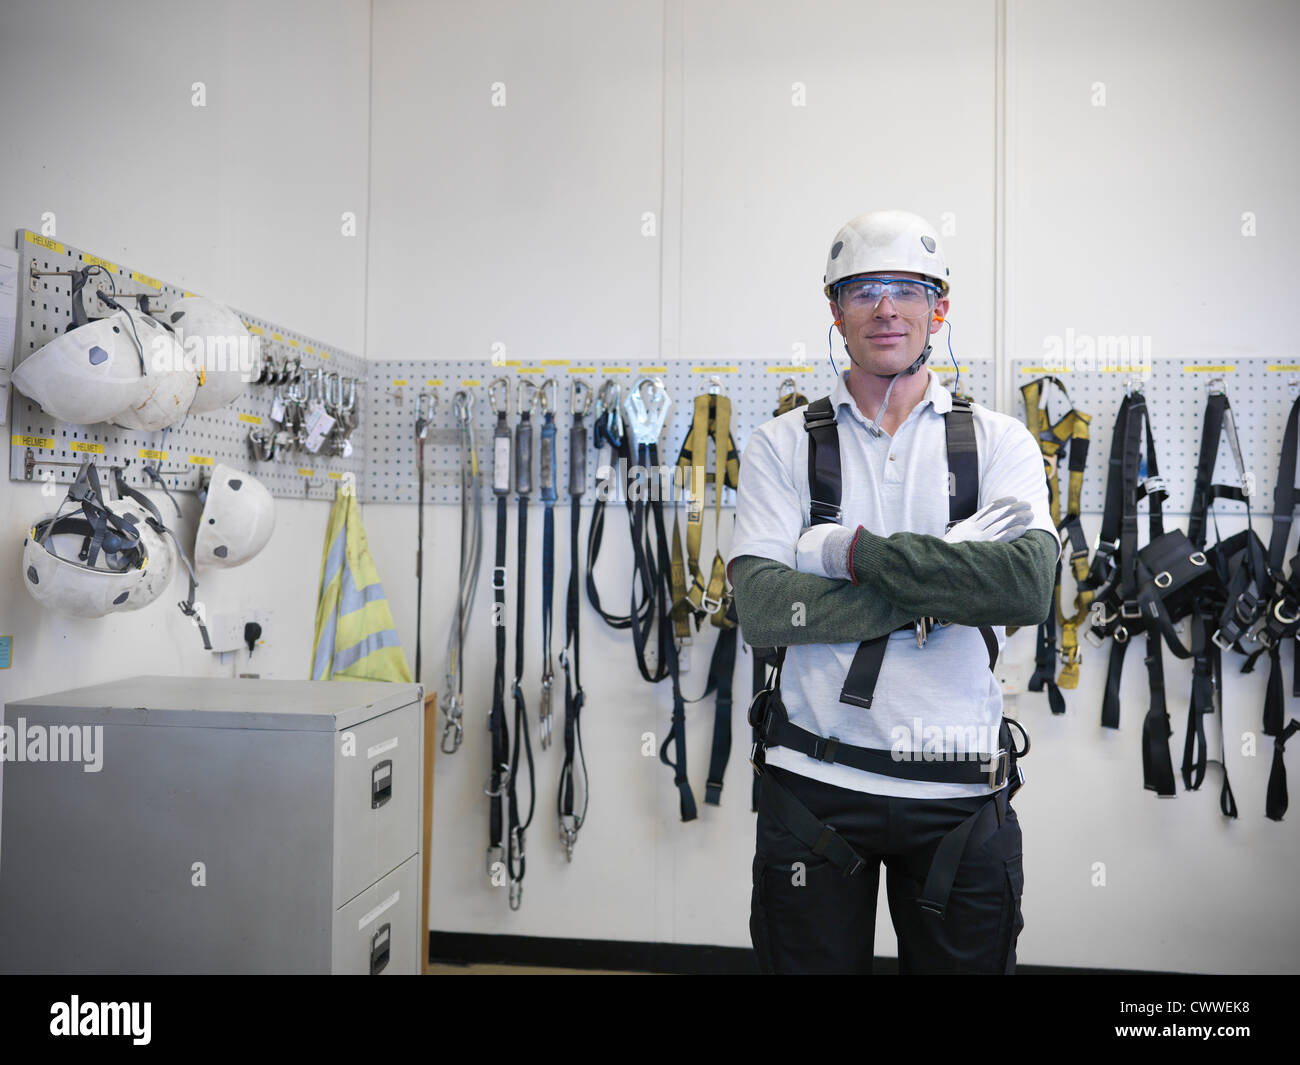 Portrait of car worker wearing health and safety equipment in car factory - Stock Image